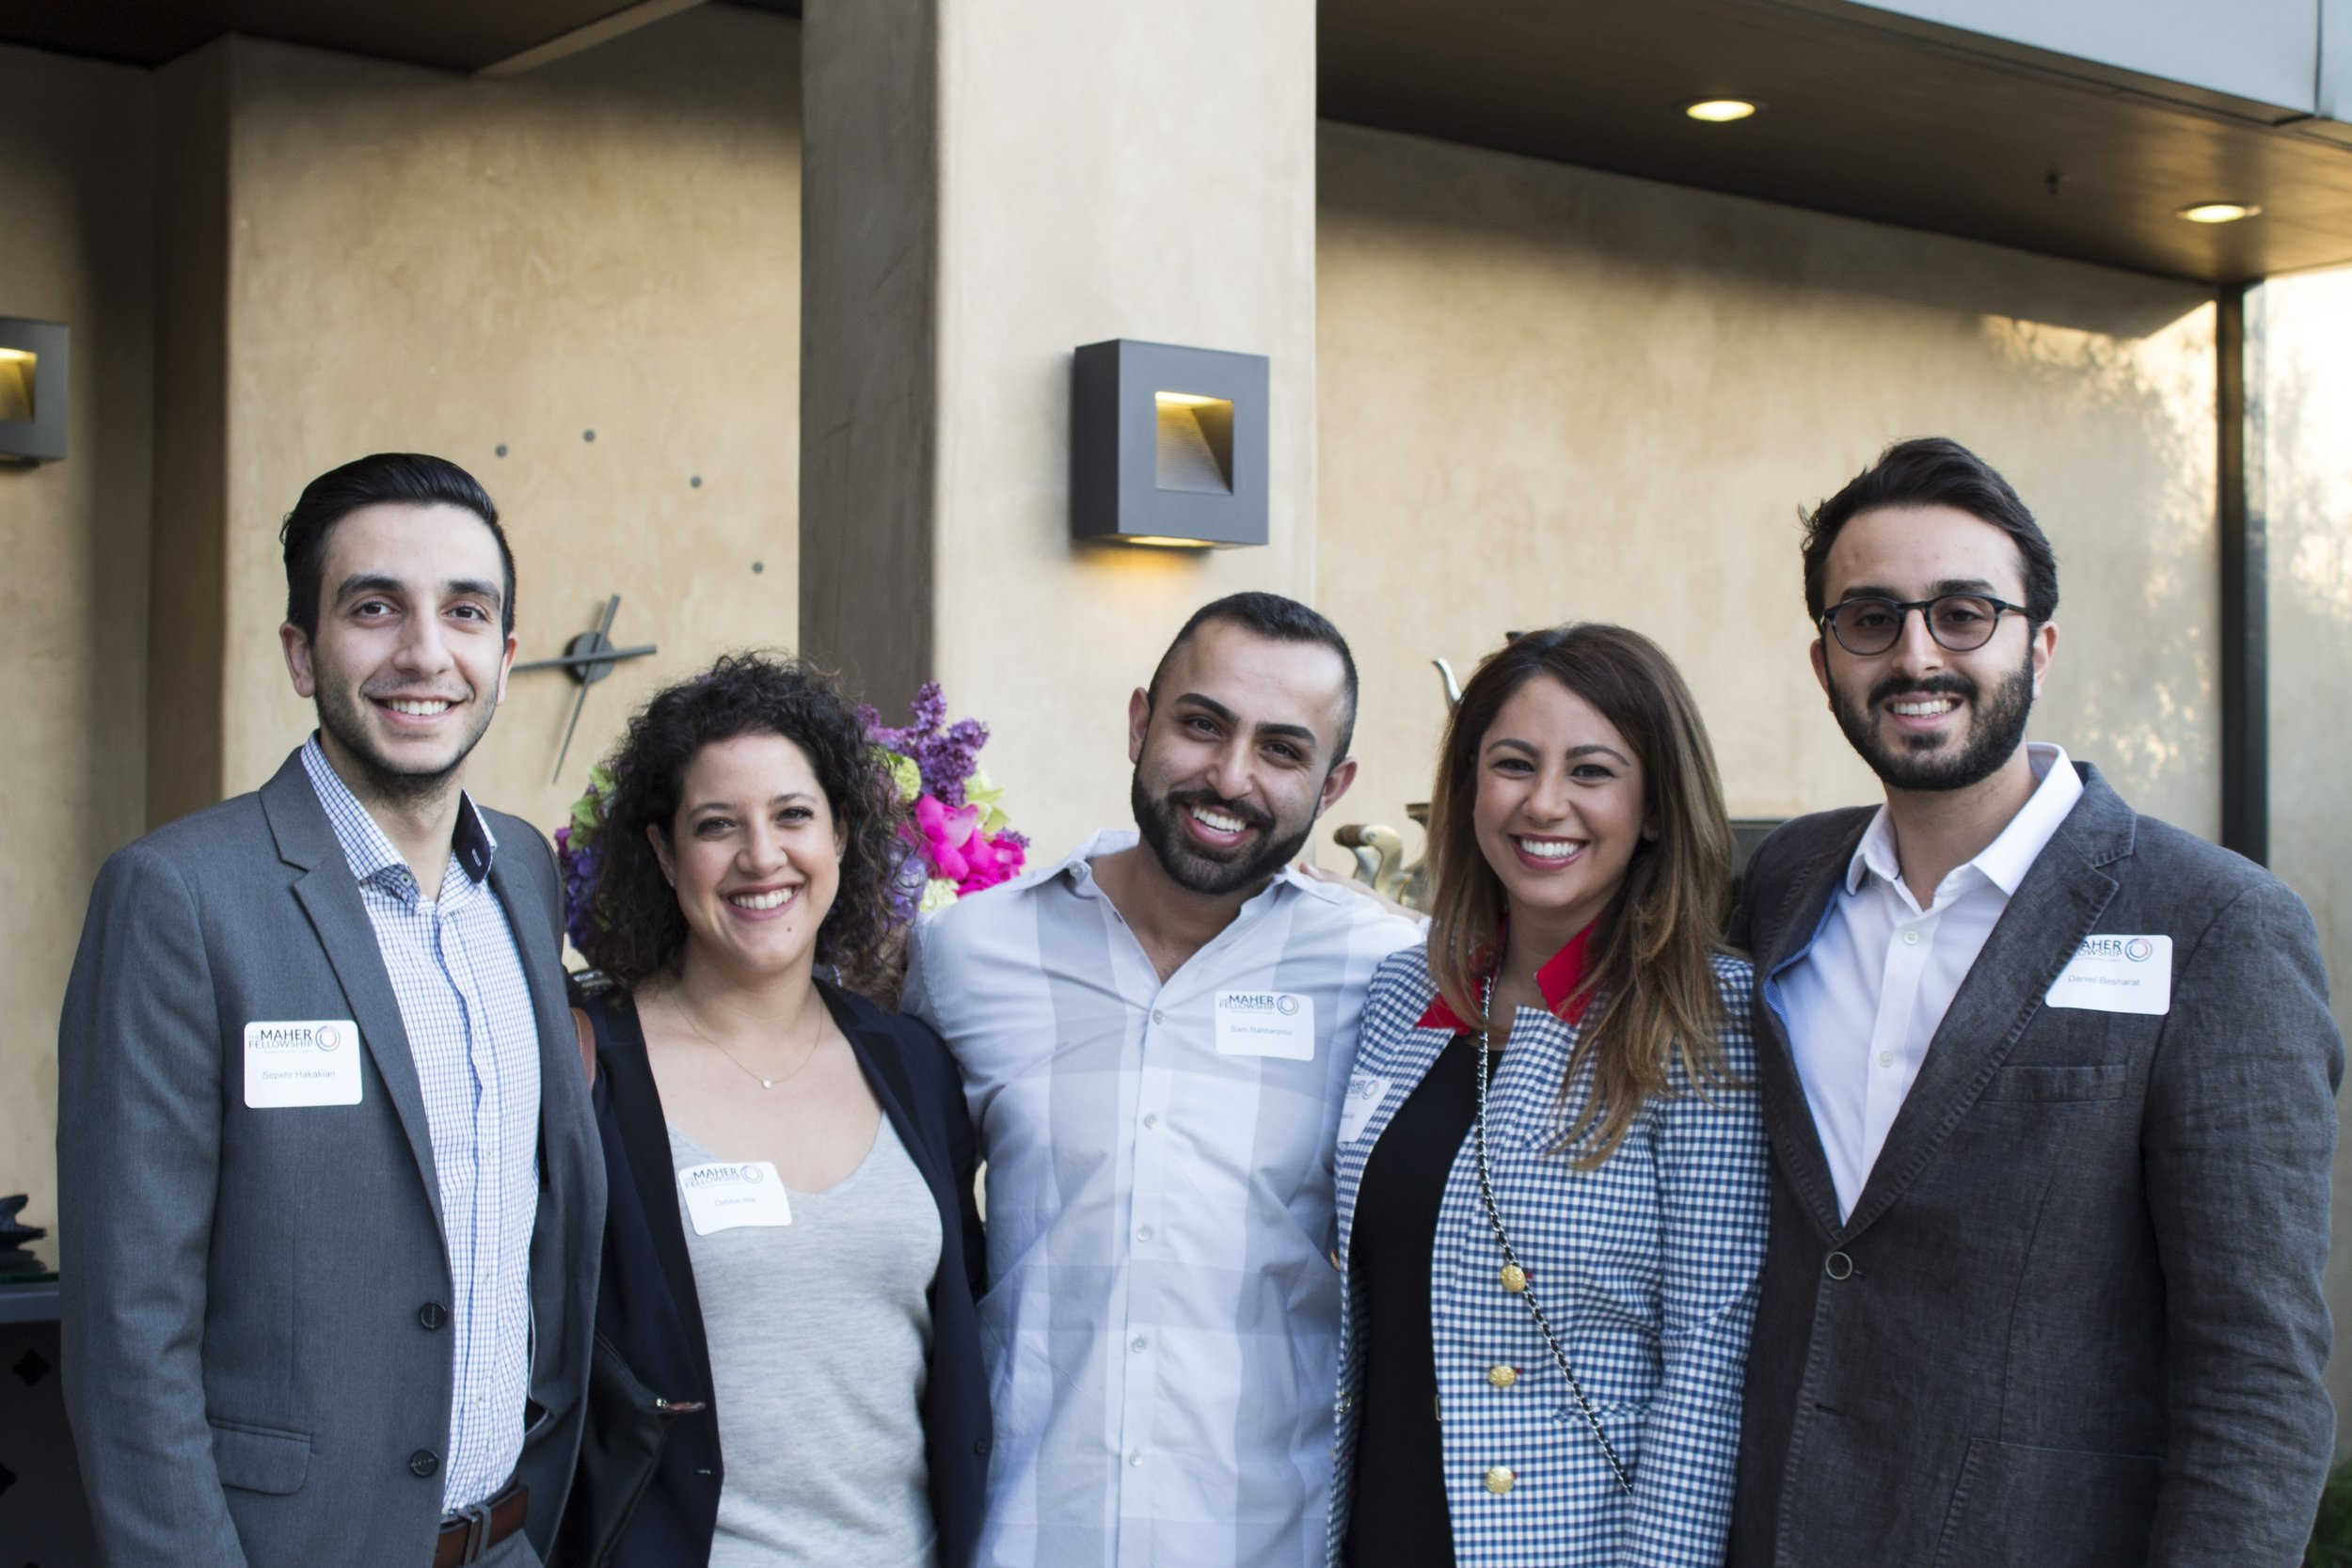 Participants of Cohort 4 at our event with the Consul General of Israel: Sepehr, Debbie, Sam, Debbie, and Daniel.